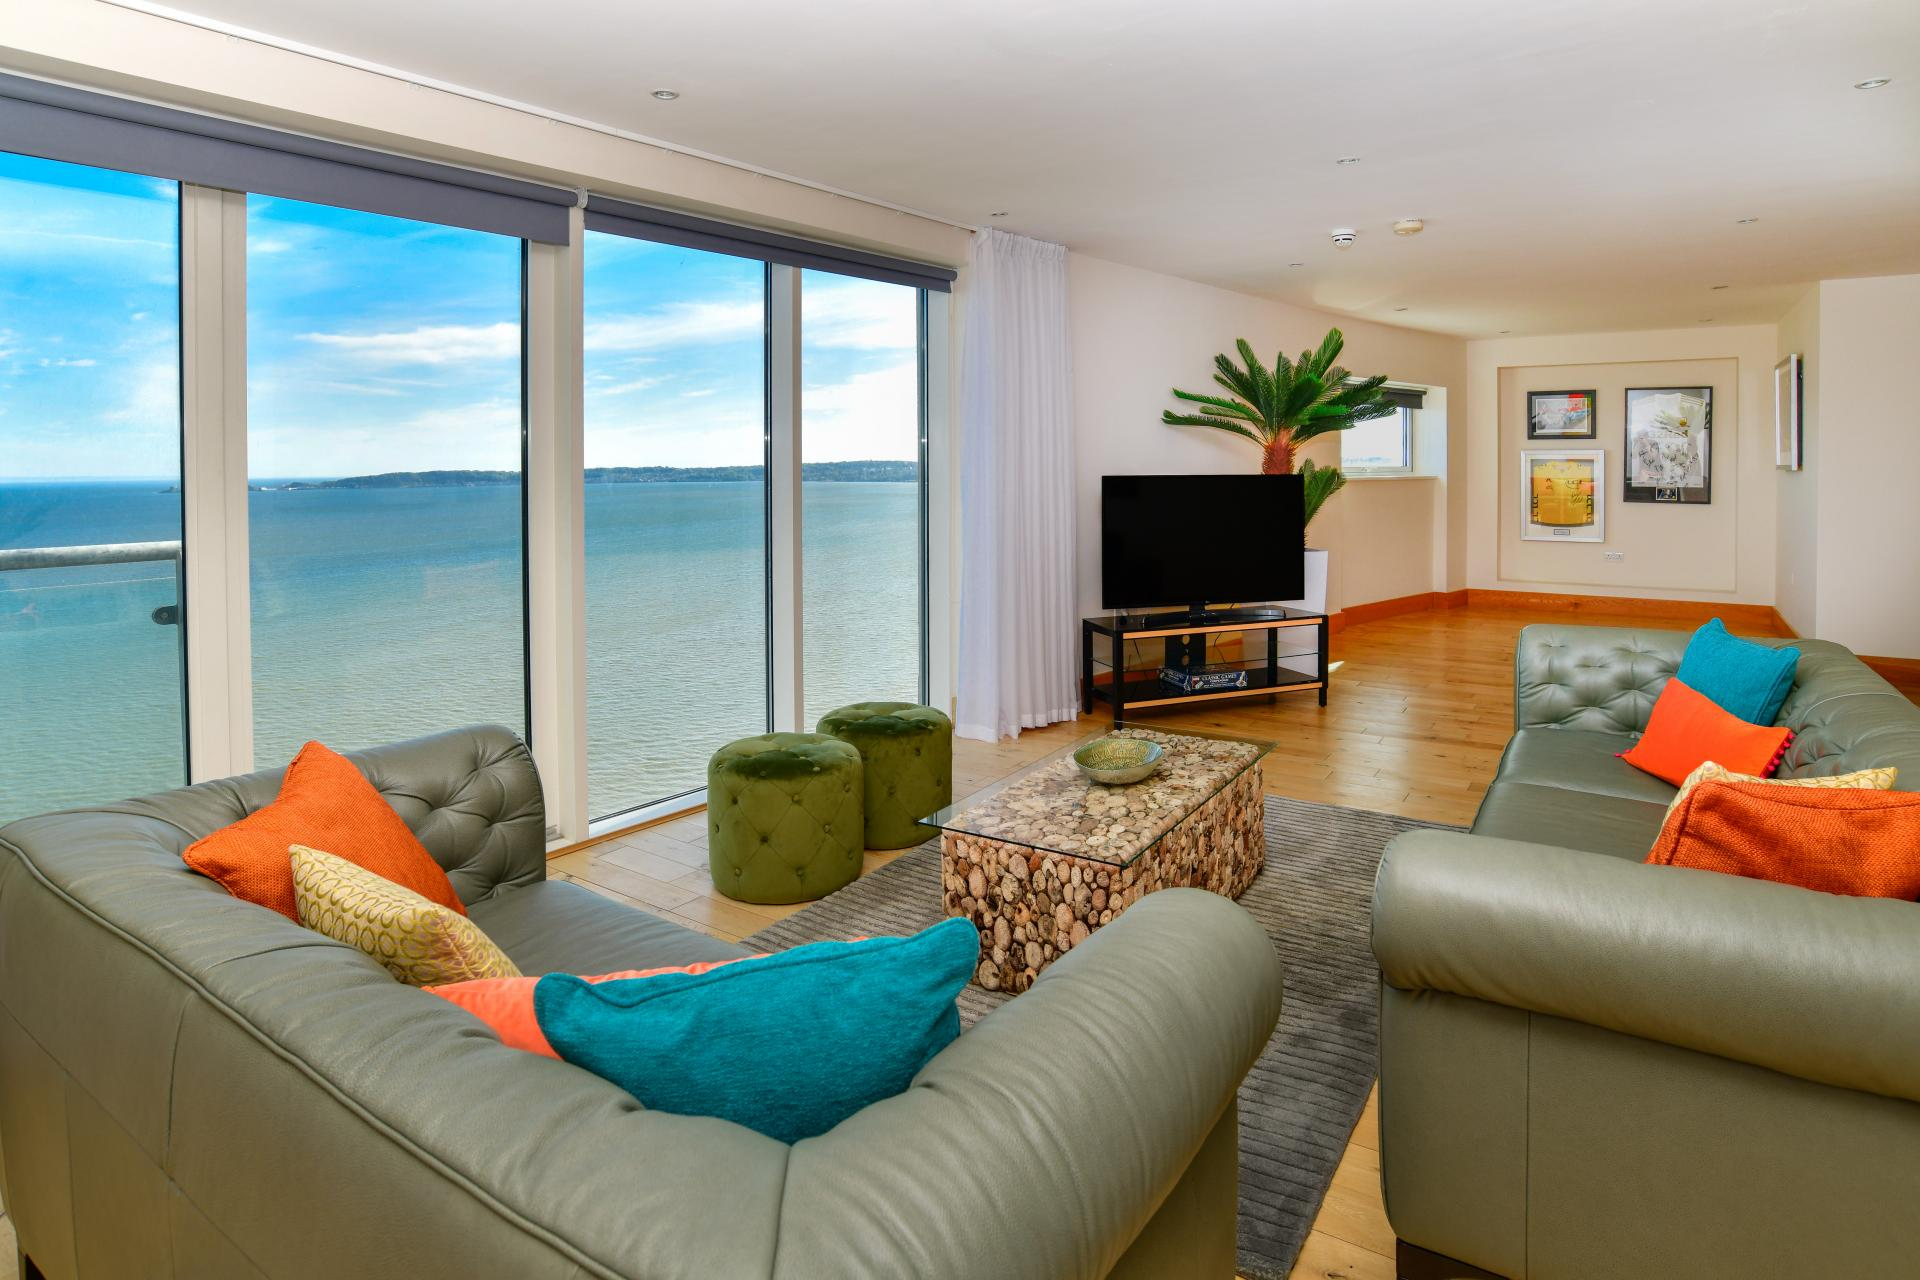 Seaview Lounge at Meridian Quay Penthouses, Maritime Quarter, Swansea - Citybase Apartments